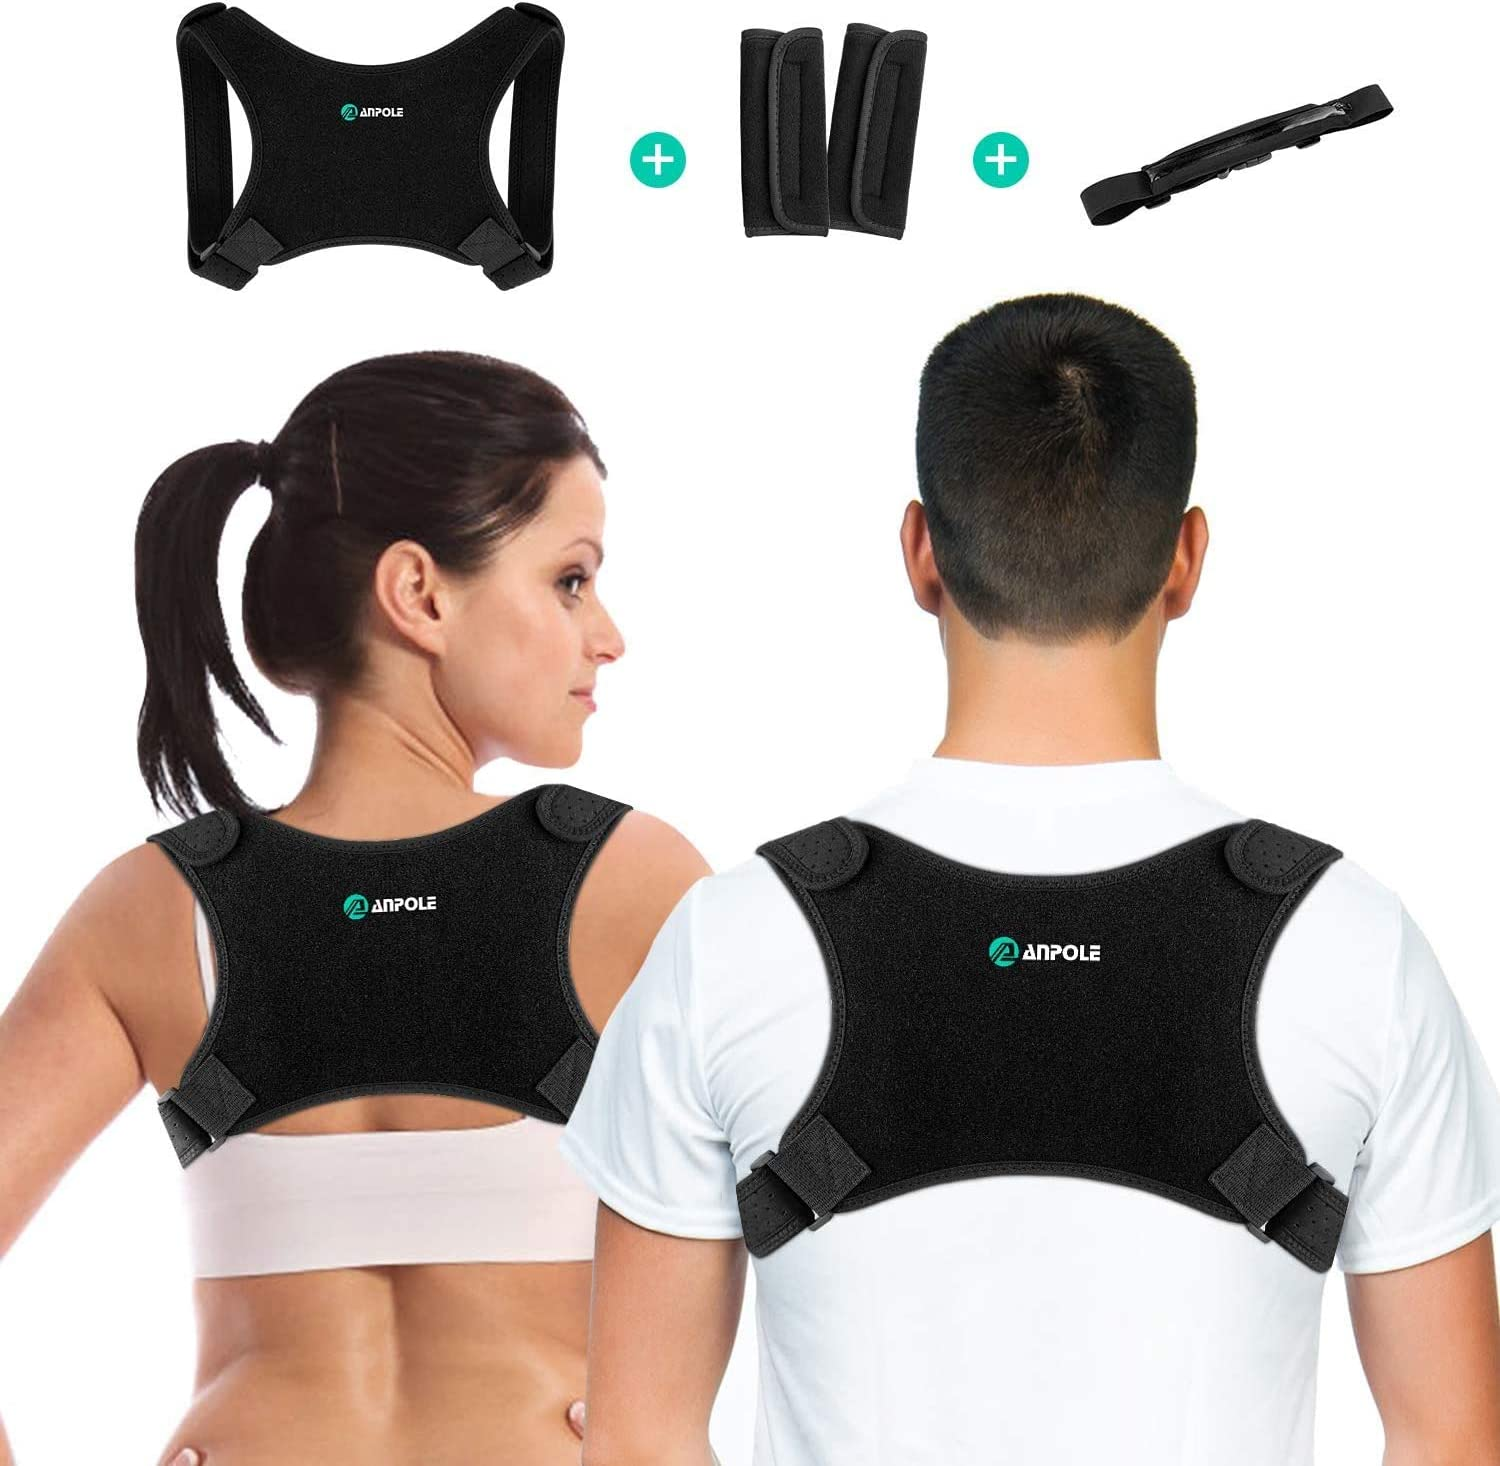 Posture Corrector for Men and Women, Adjustable Upper Back Brace Straightener, Invisible Posture Back Support - Providing Pain Relief from Neck, Back and Shoulder (Universal)